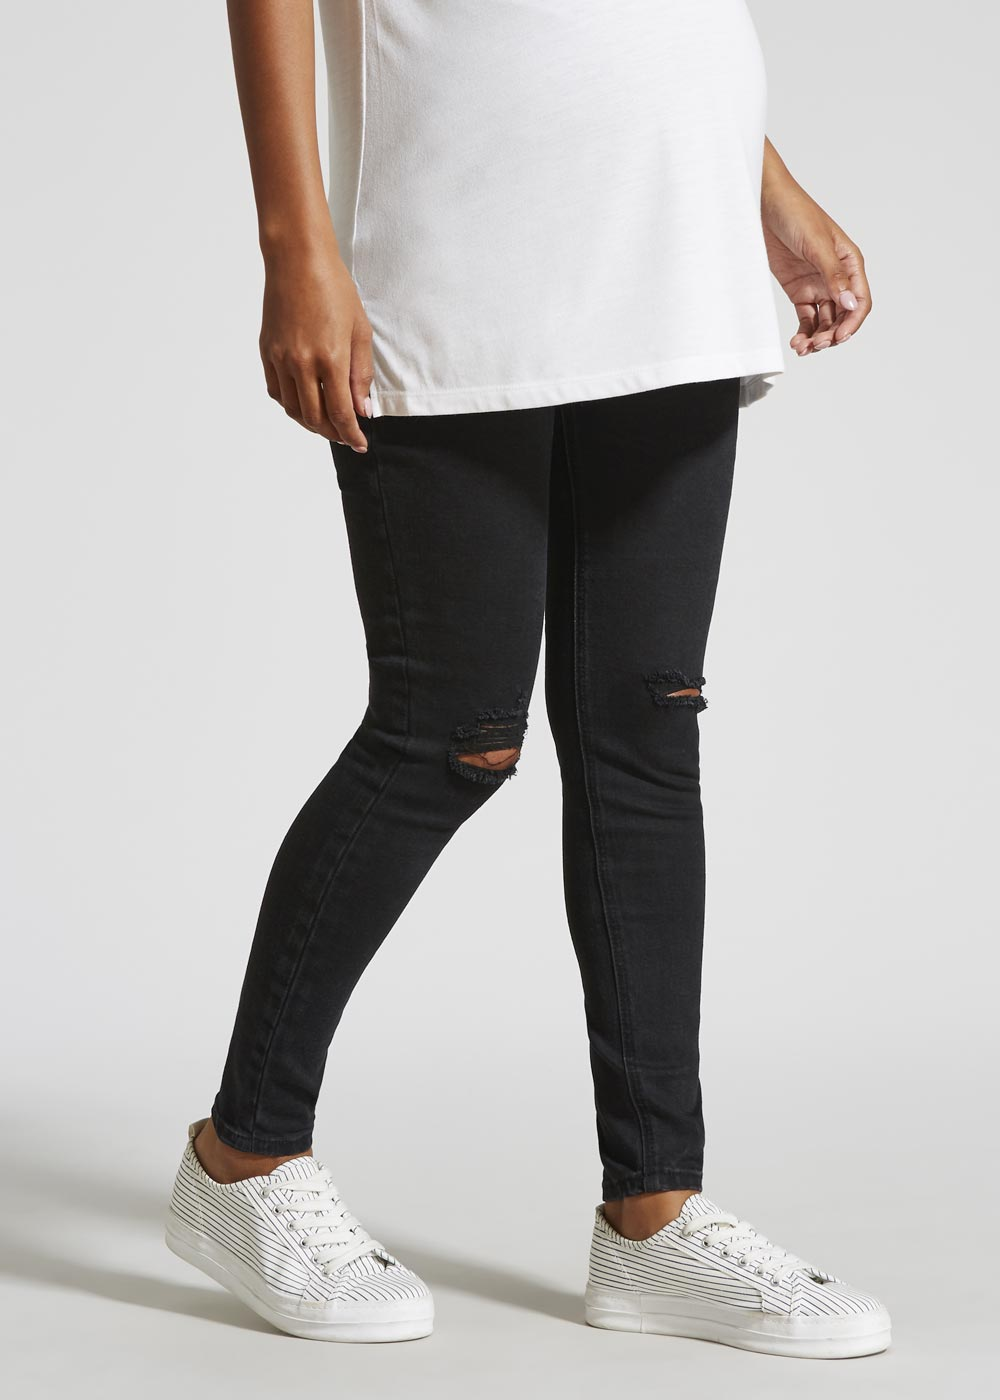 92f96f6004570 This review is from Maternity Over Bump Distressed Skinny Jeans.